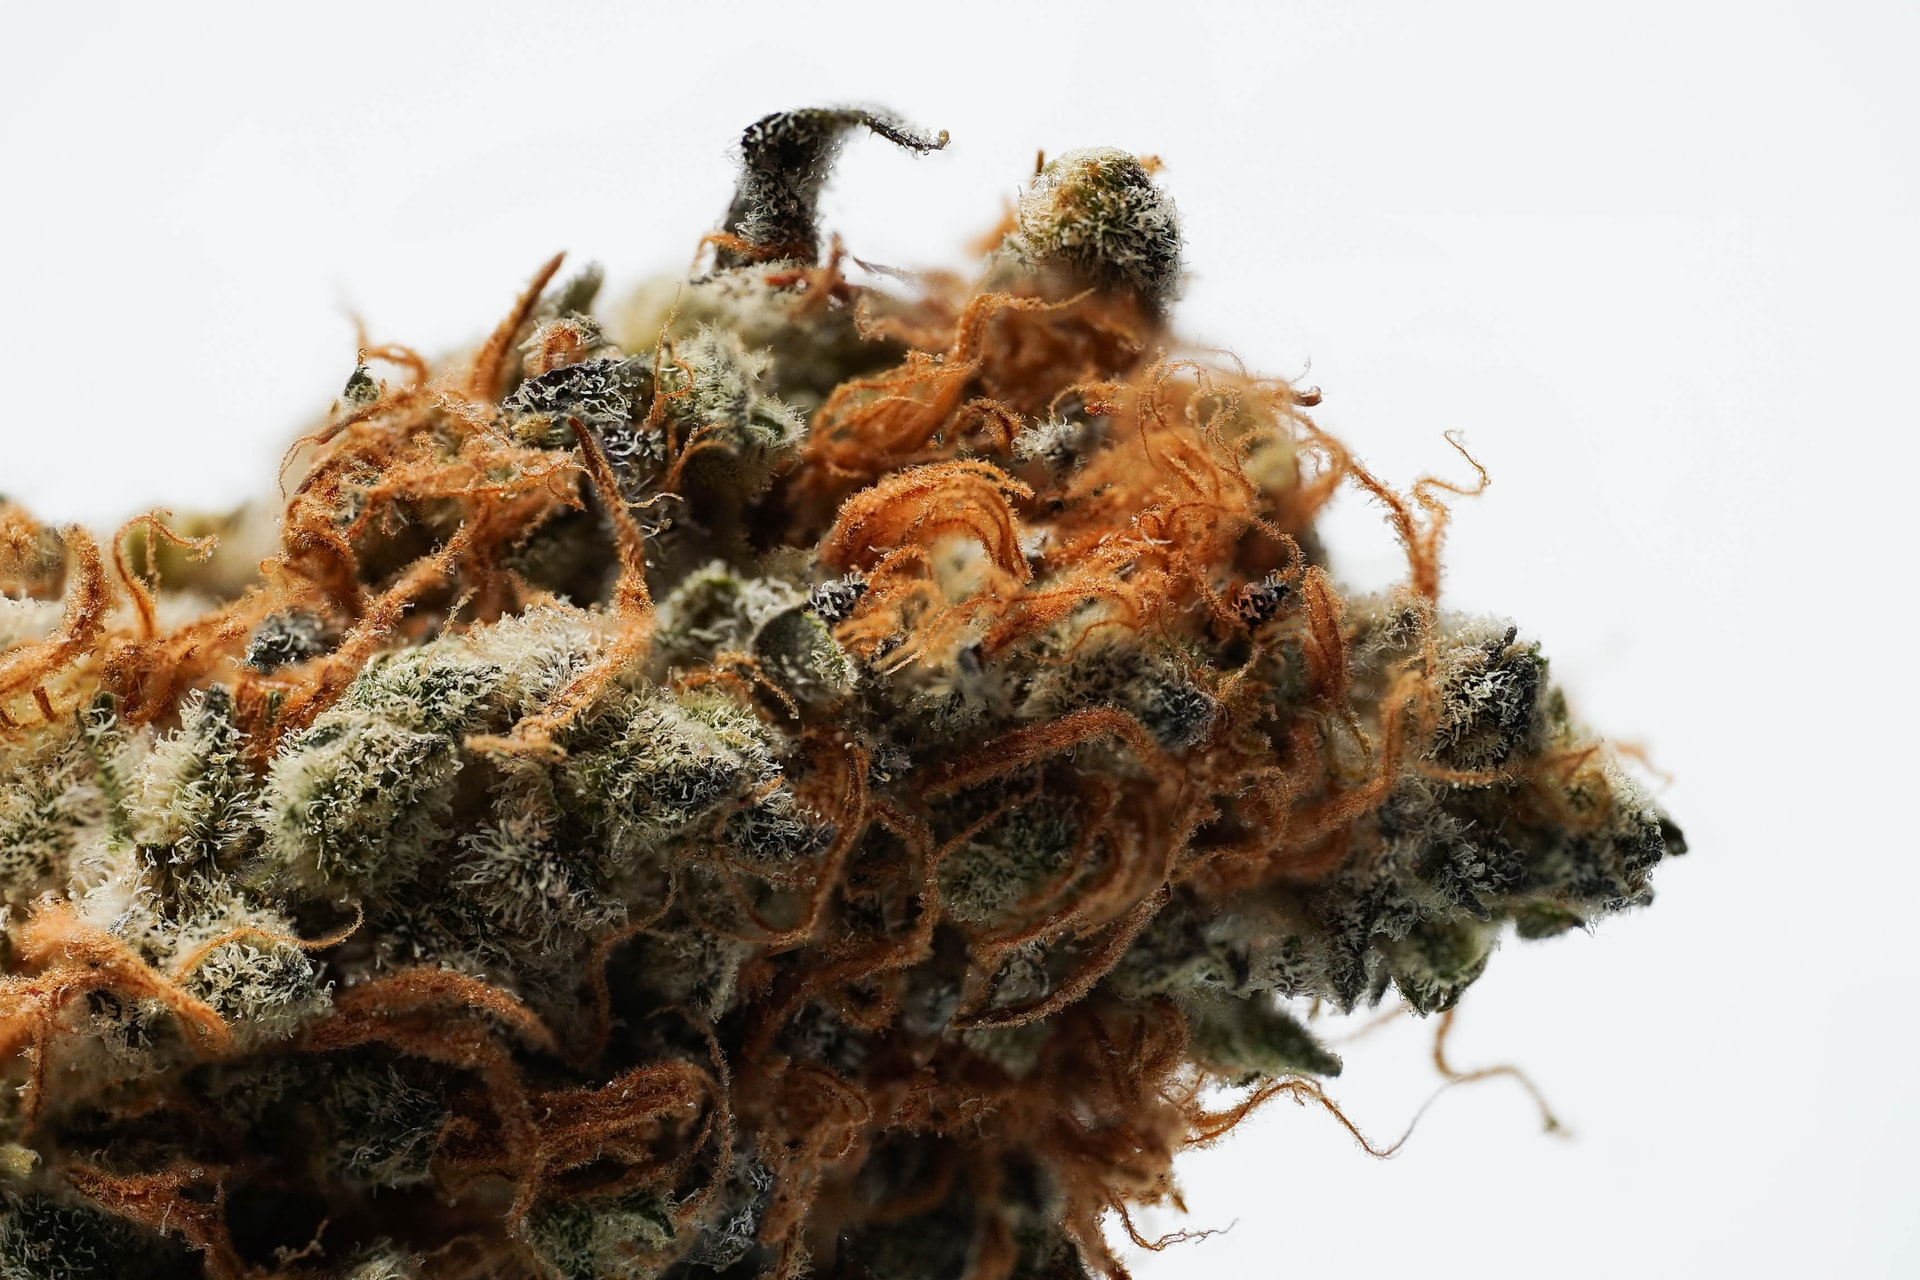 Cannabis Earnings Impress, Slow Pace of Regulatory Reform Could Accelerate in Months Ahead